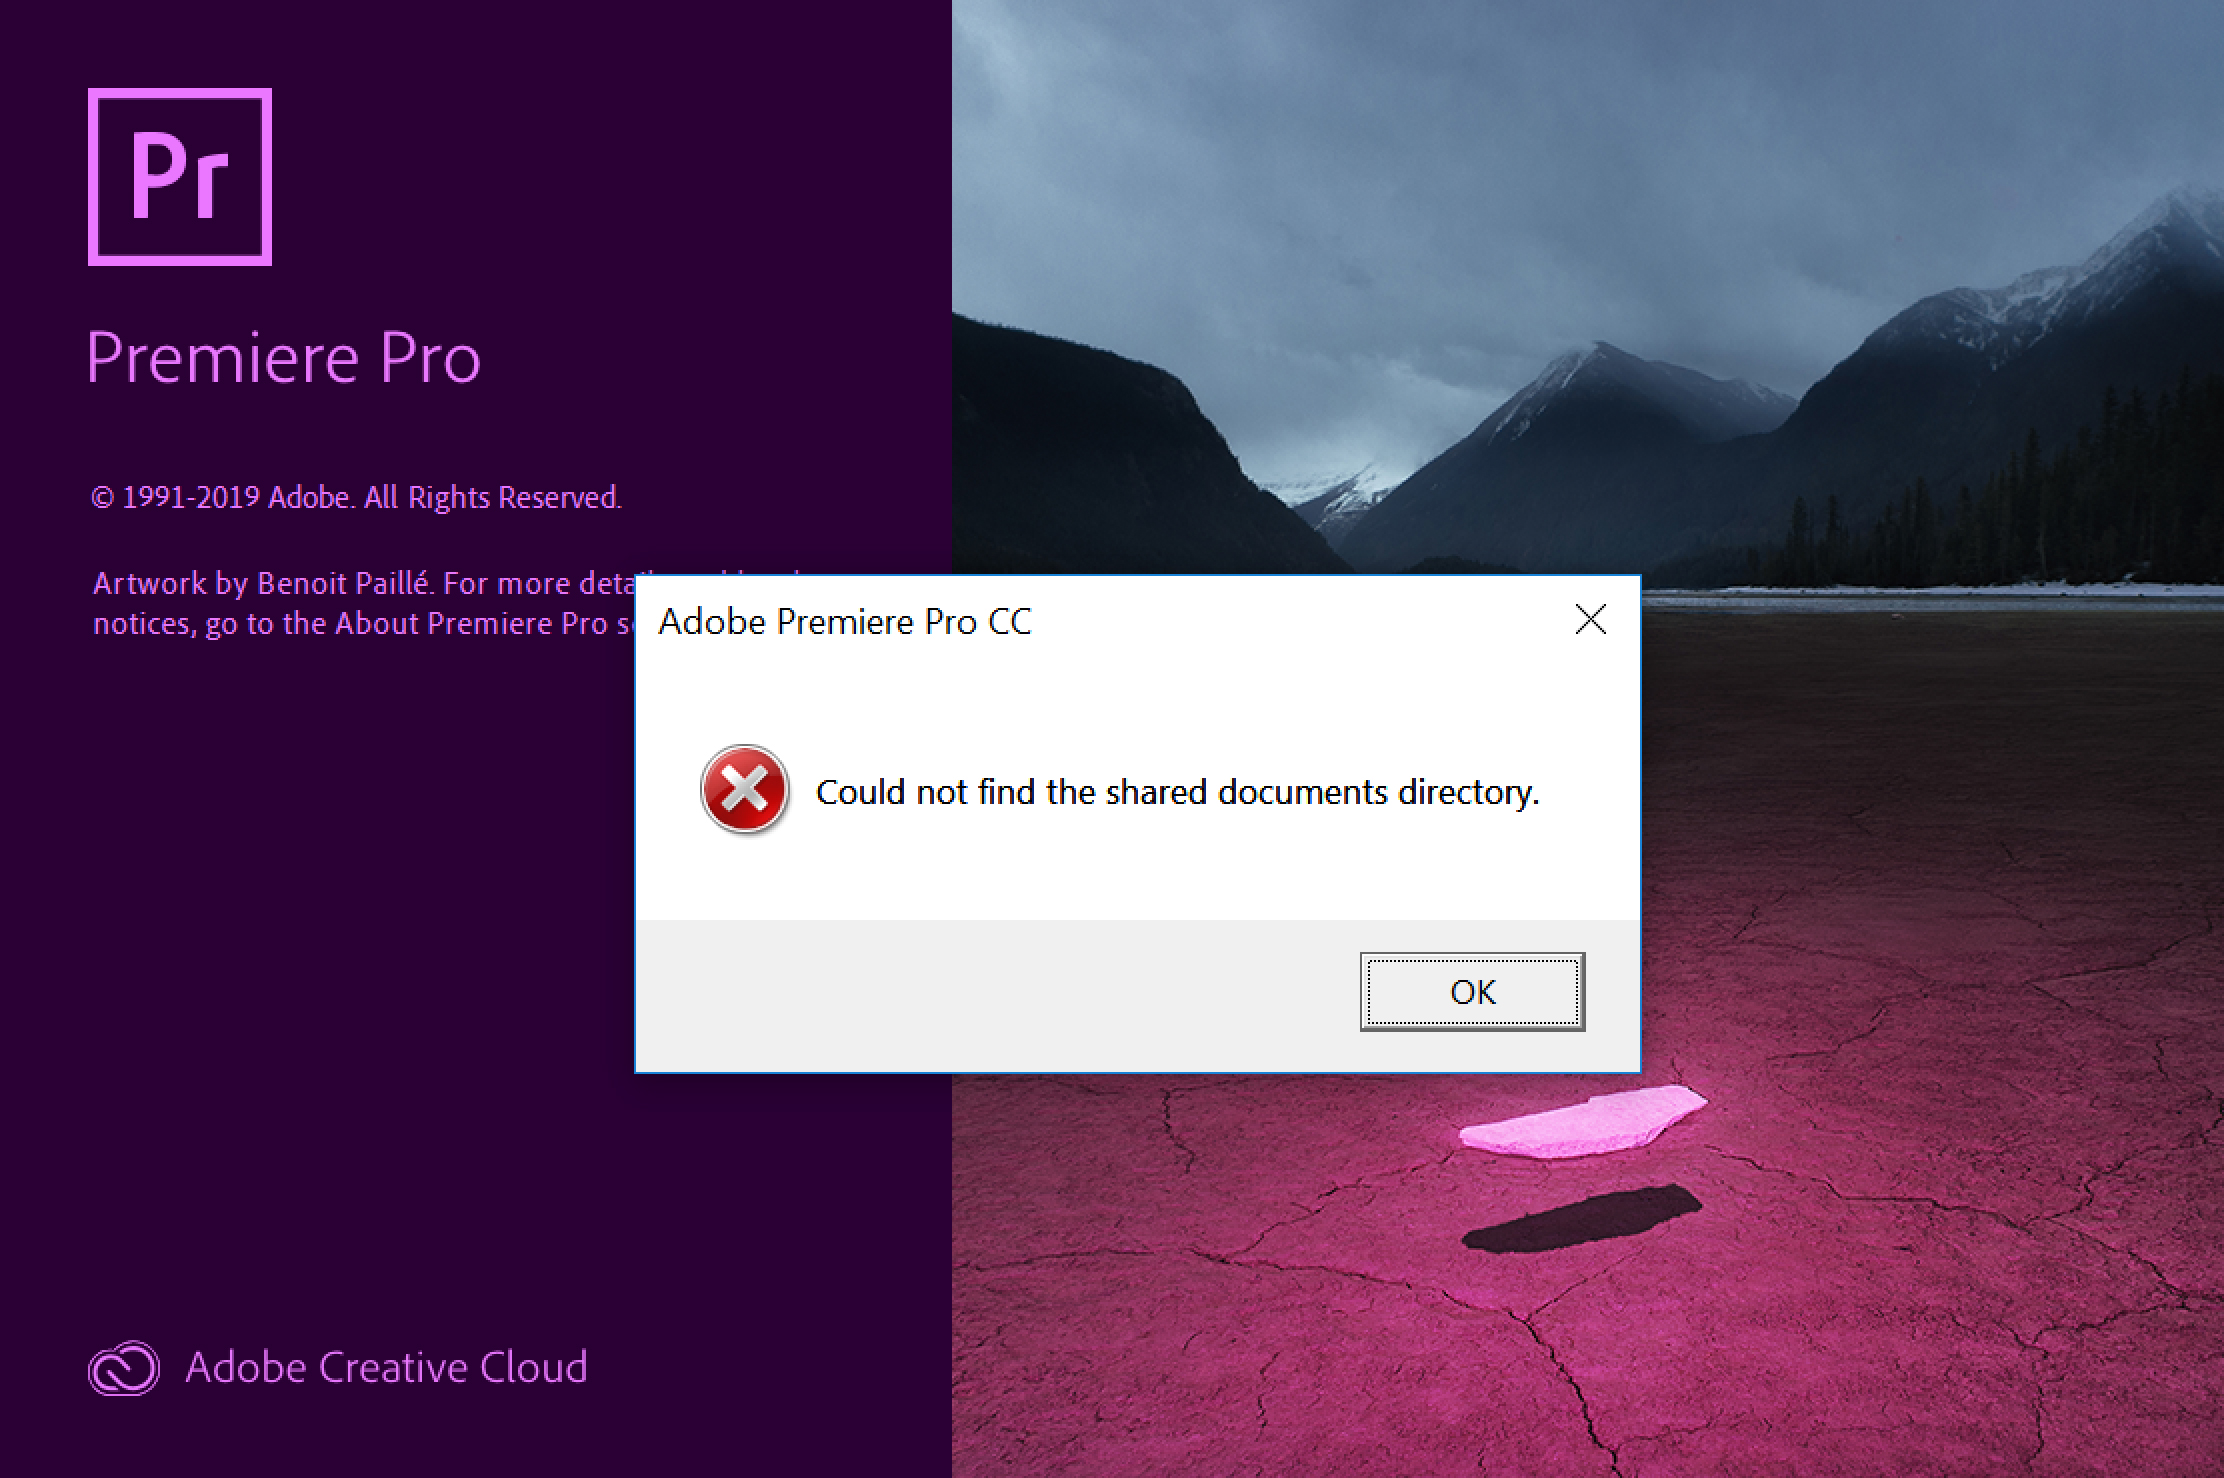 Adobe Creative Cloud down? Current outages and problems | Downdetector